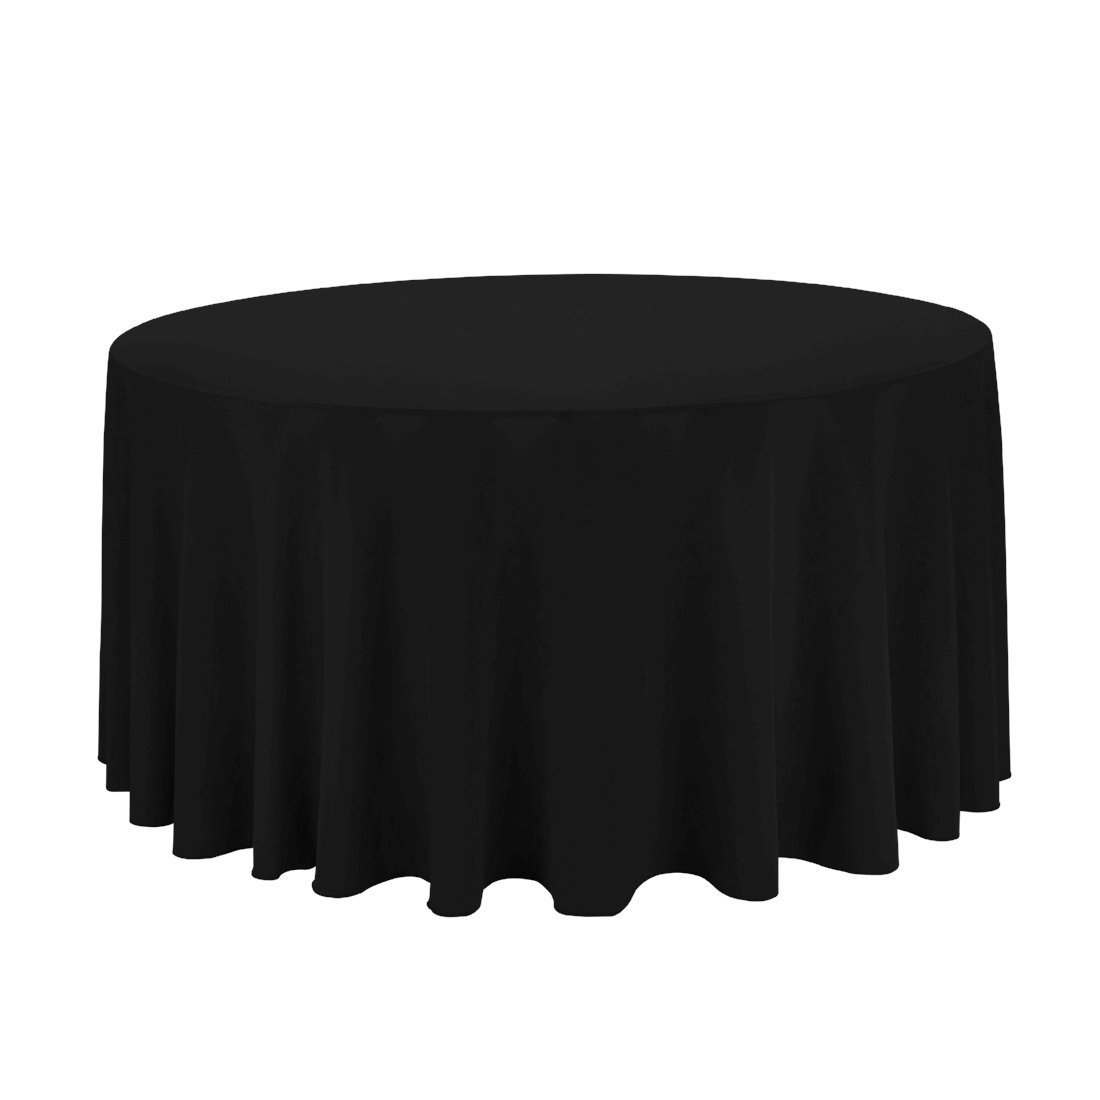 Craft and Party - 10 pcs Round Tablecloth for Home, Party, Wedding or Restaurant Use. (Black, 120'' Round)